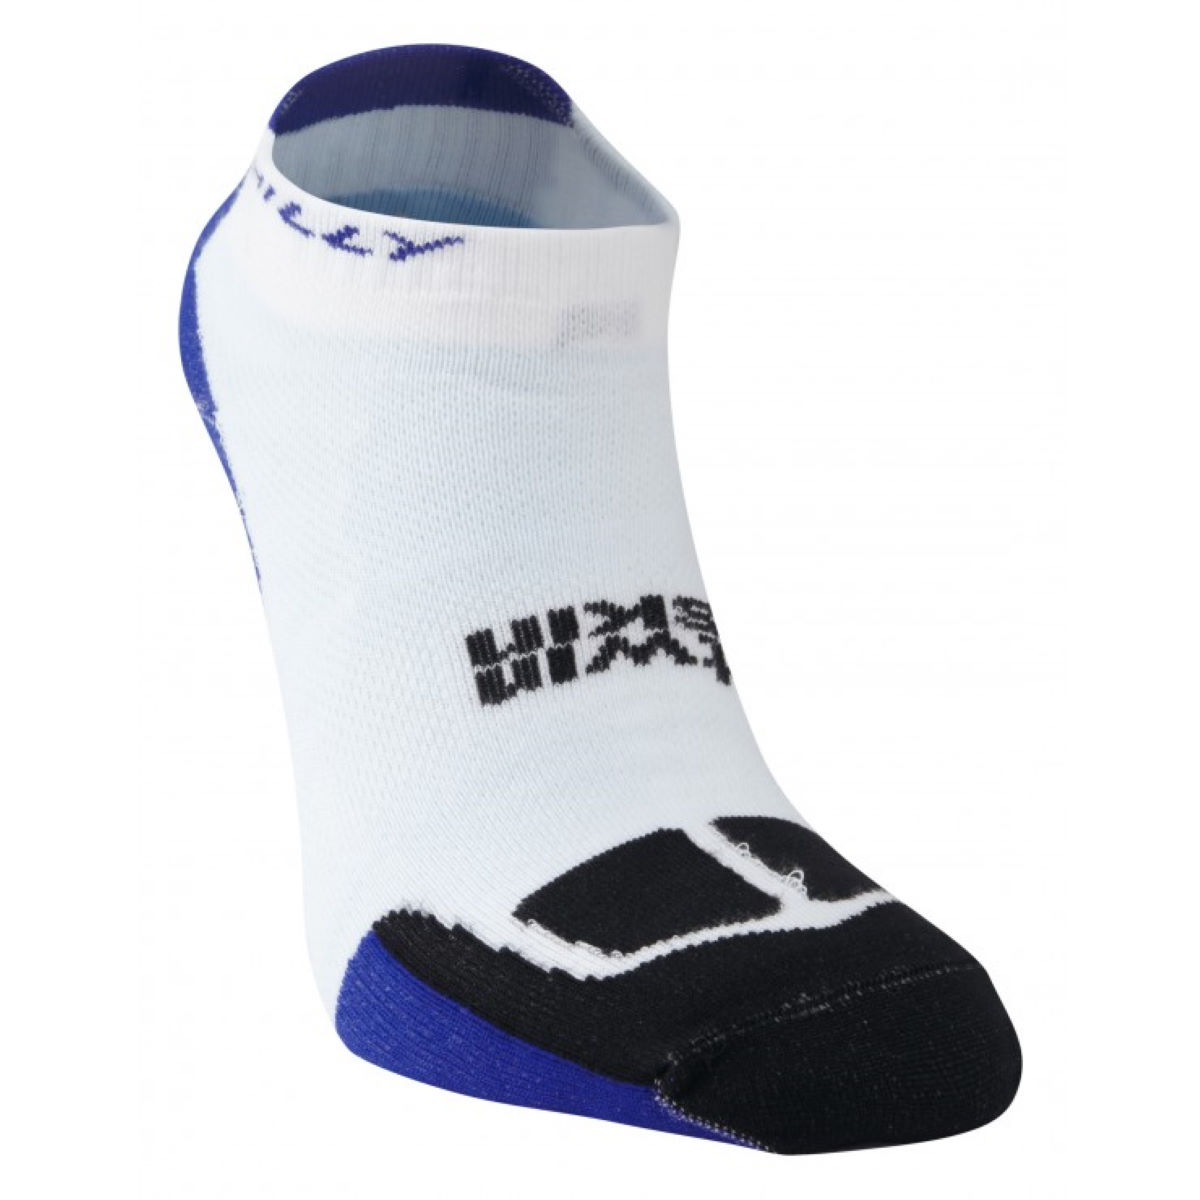 Chaussettes Hilly TwinSkin - M White/Blue/Black  Chaussettes